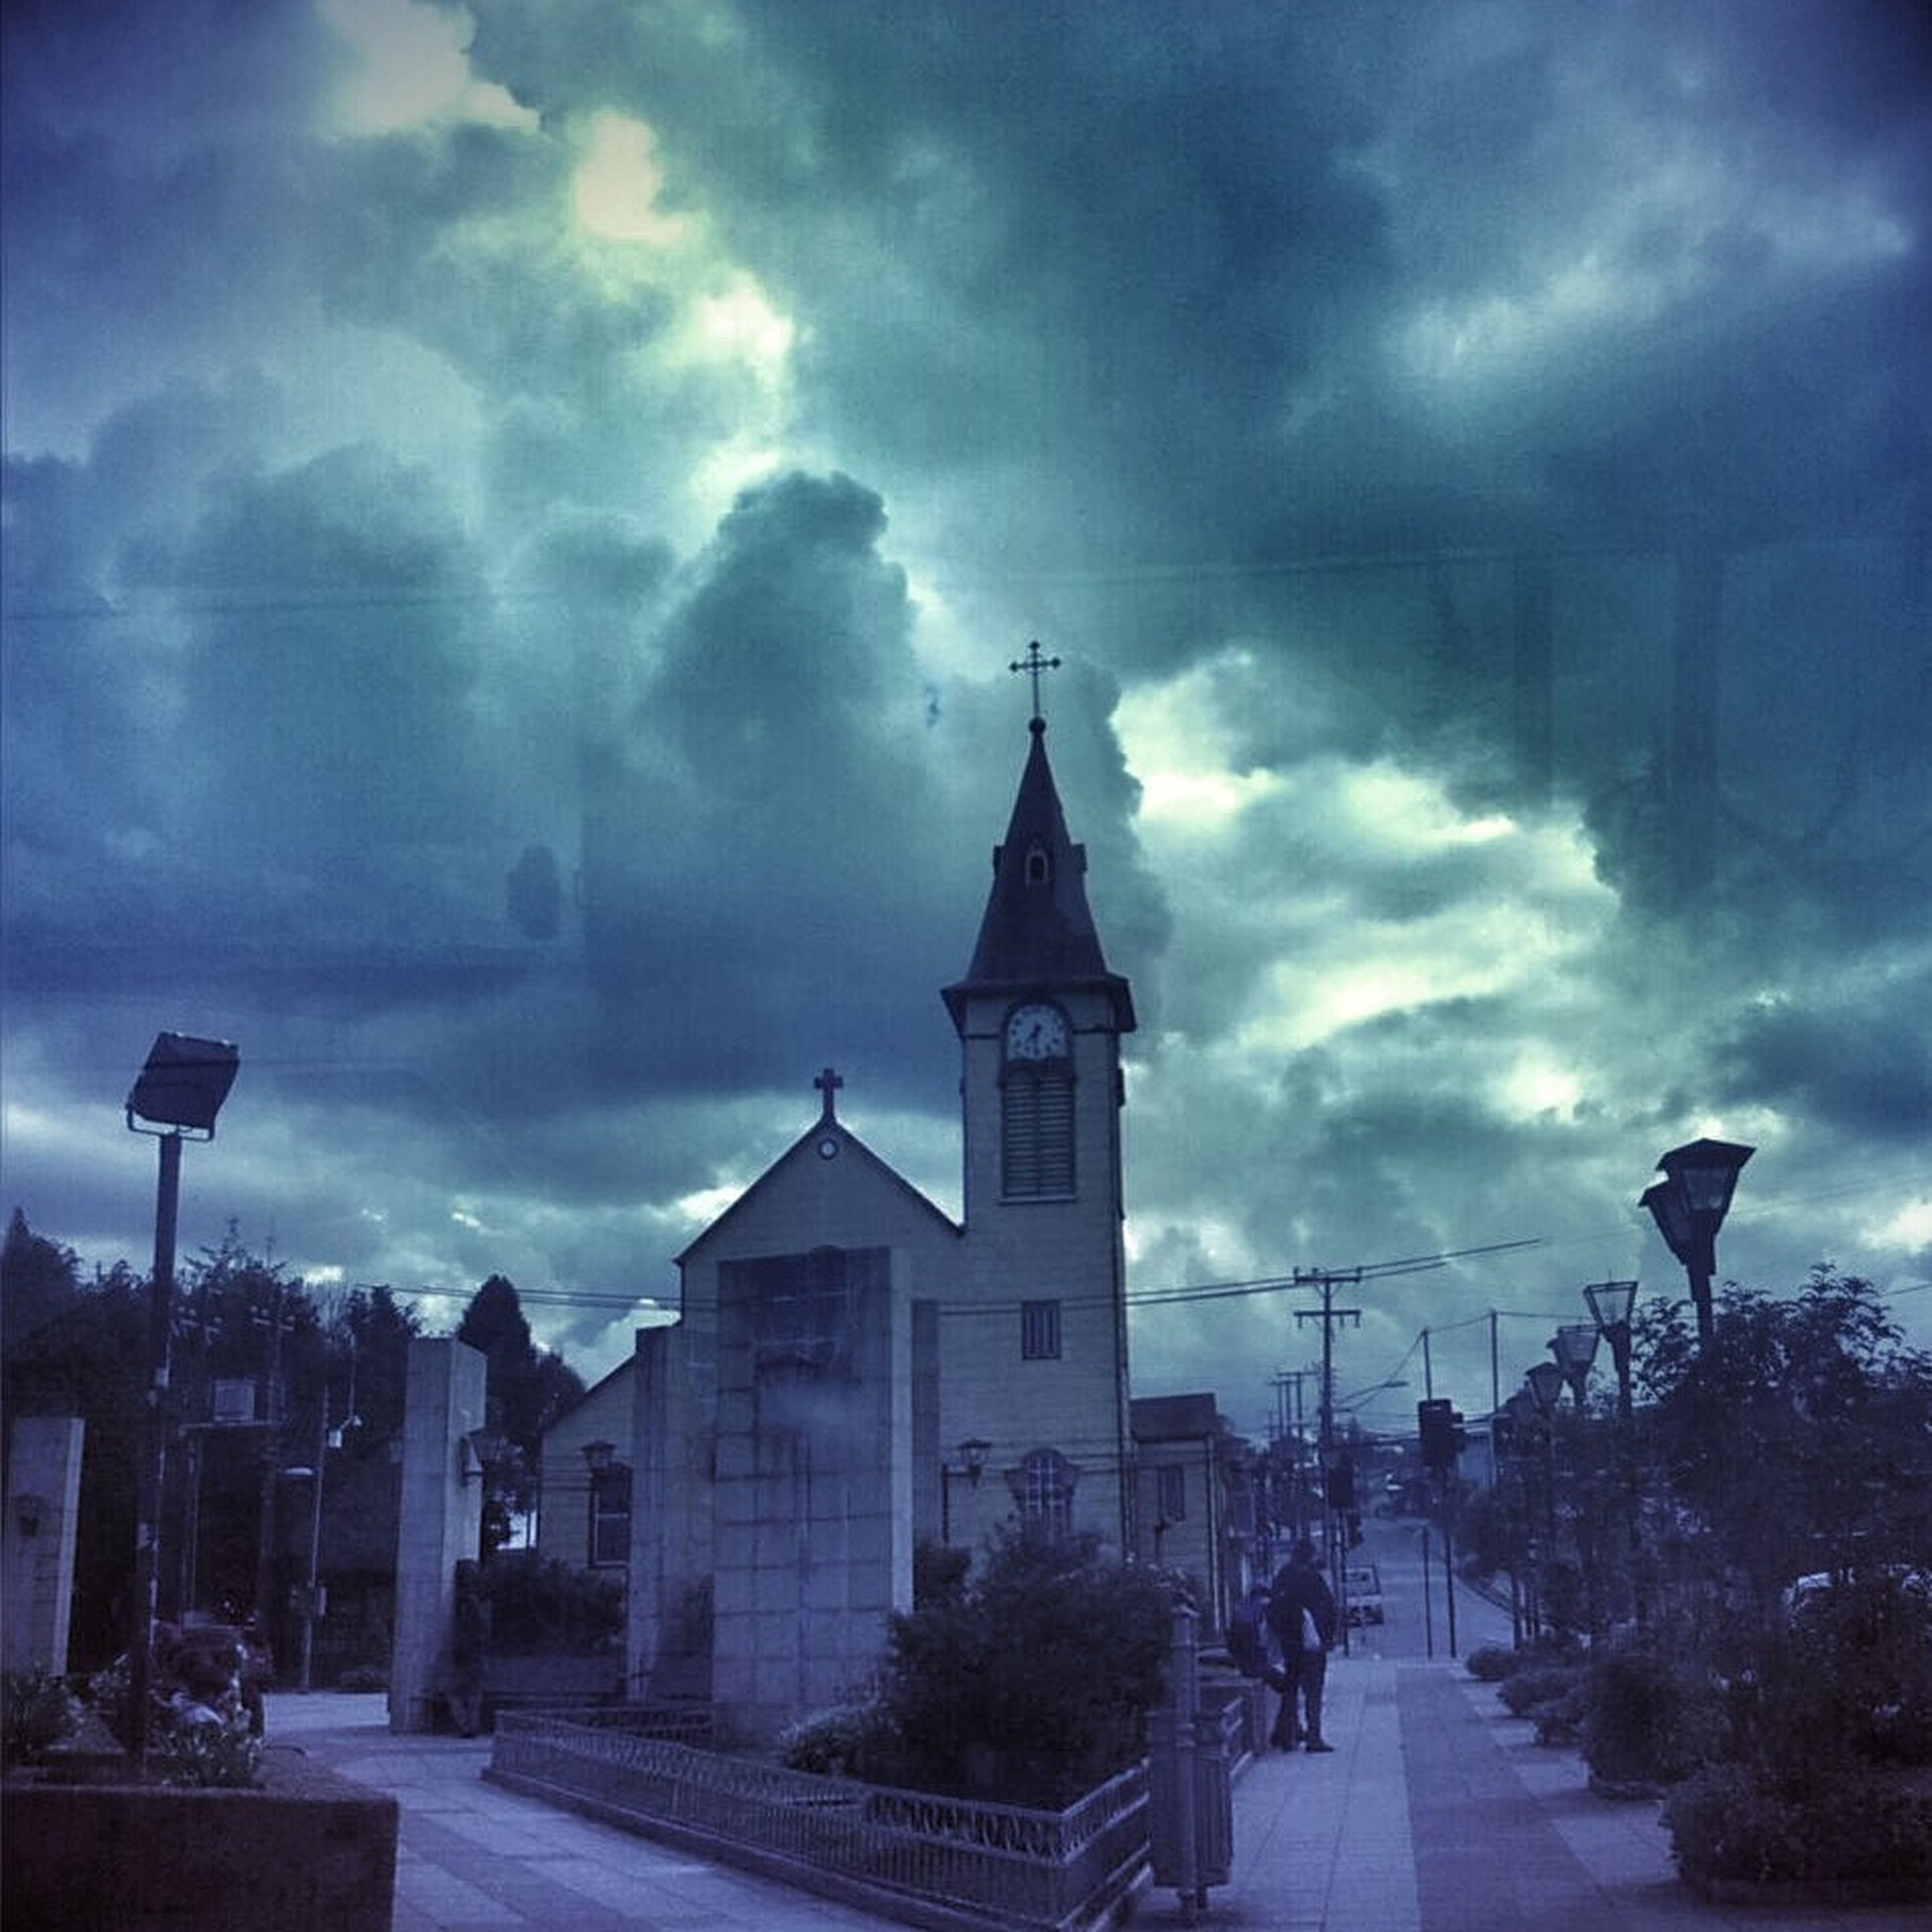 sky, cloud - sky, building exterior, cloudy, road, transportation, built structure, architecture, street, car, street light, land vehicle, the way forward, weather, cloud, mode of transport, overcast, incidental people, outdoors, storm cloud